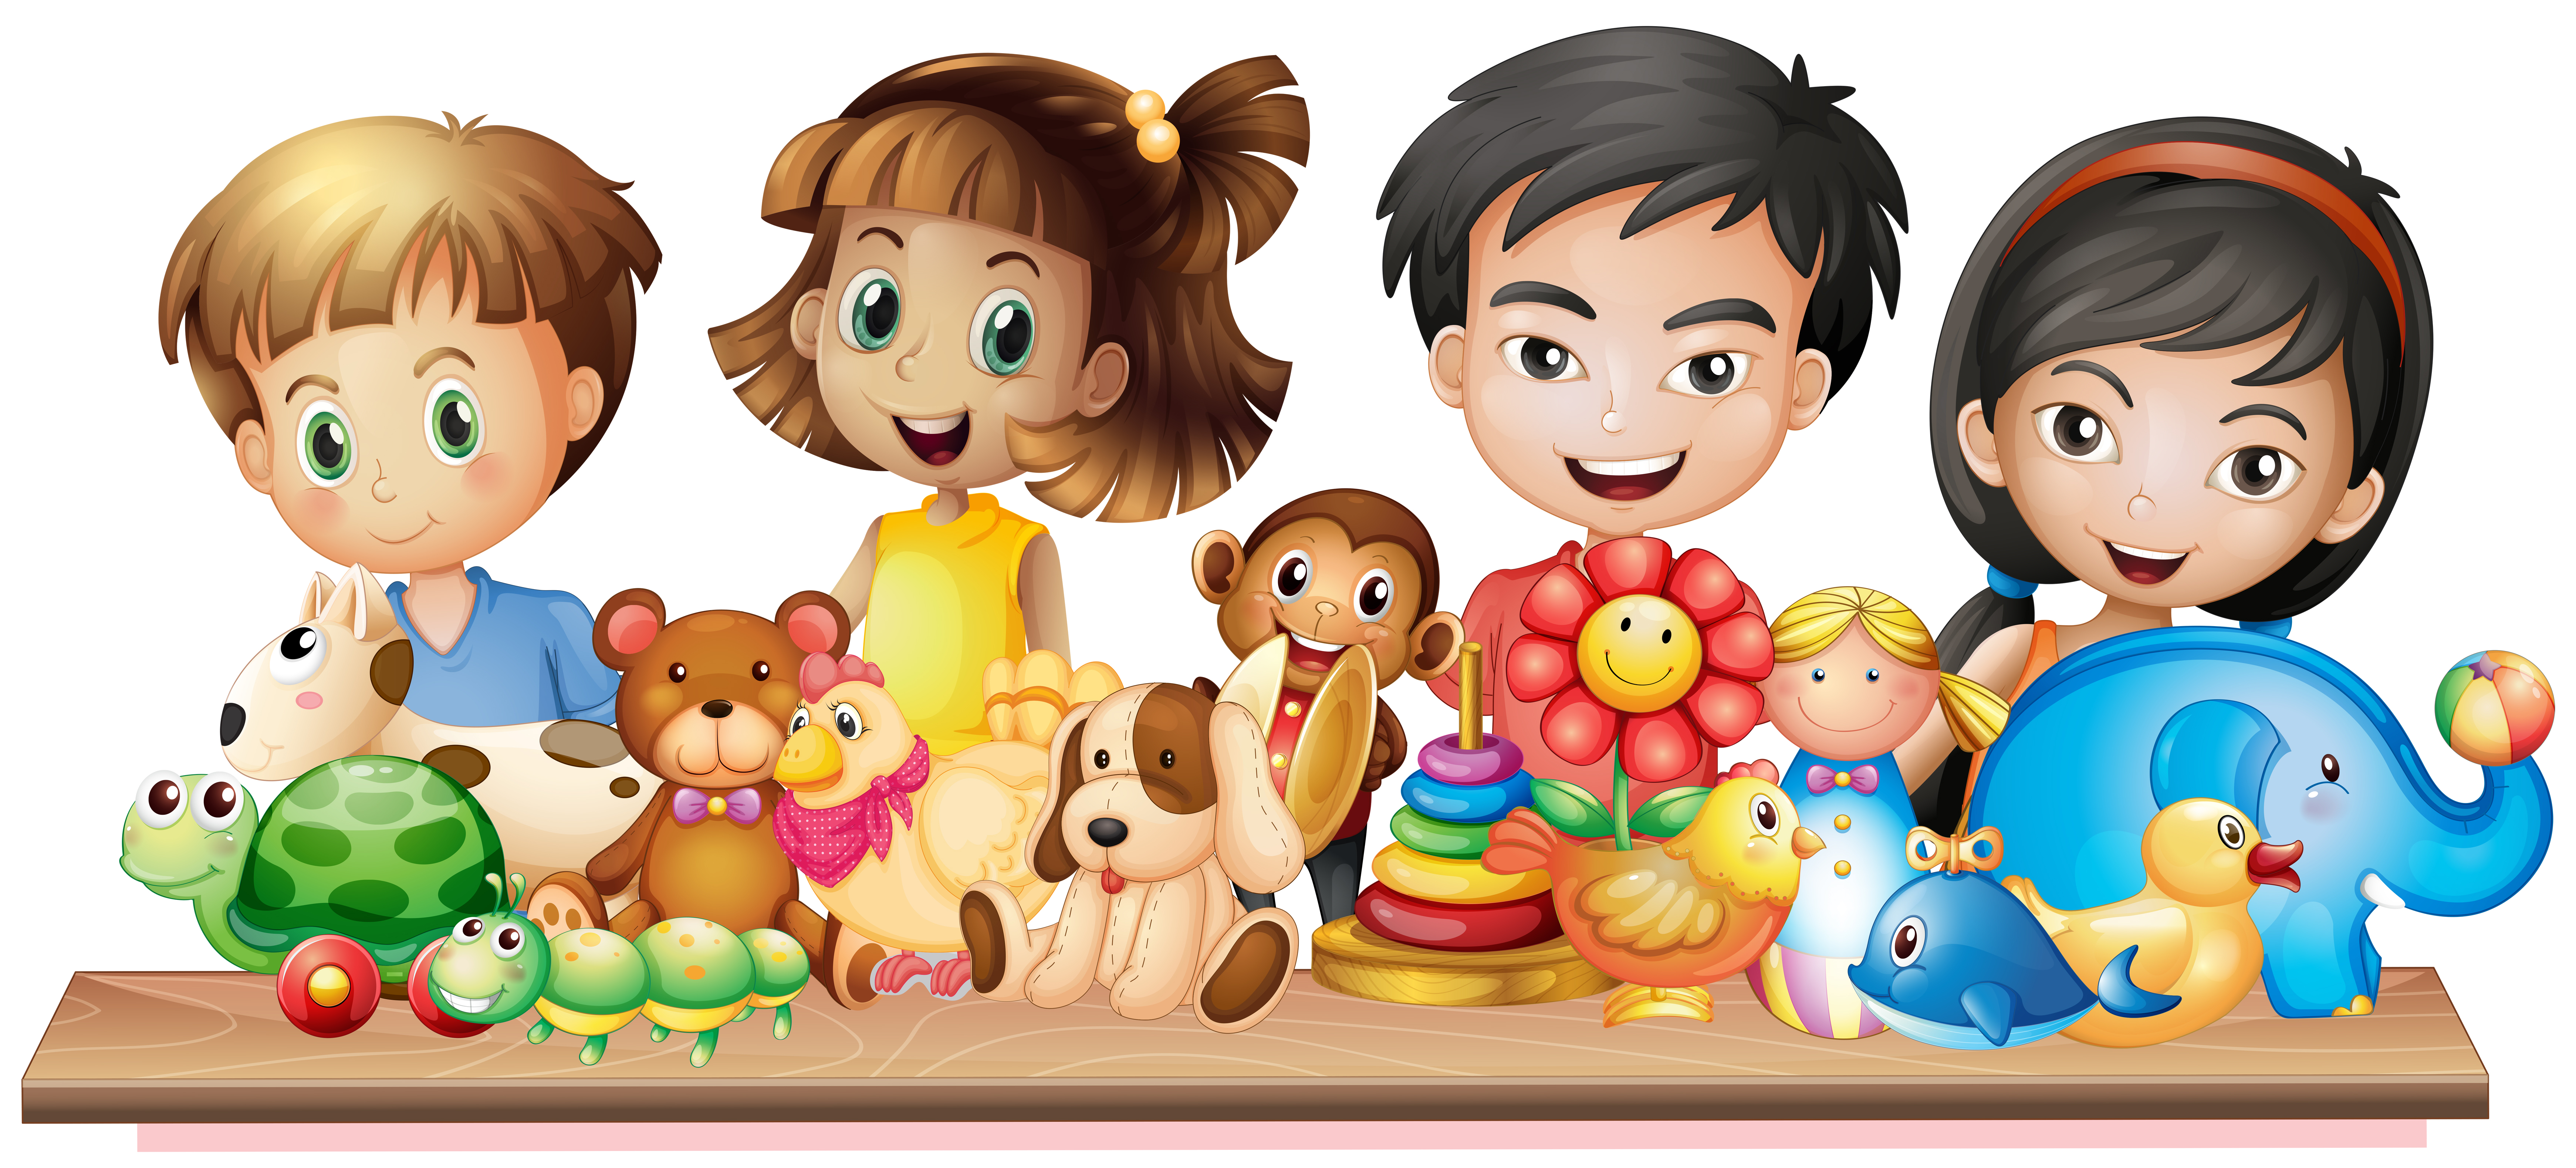 Many children looking at cute toys - Download Free Vectors ...